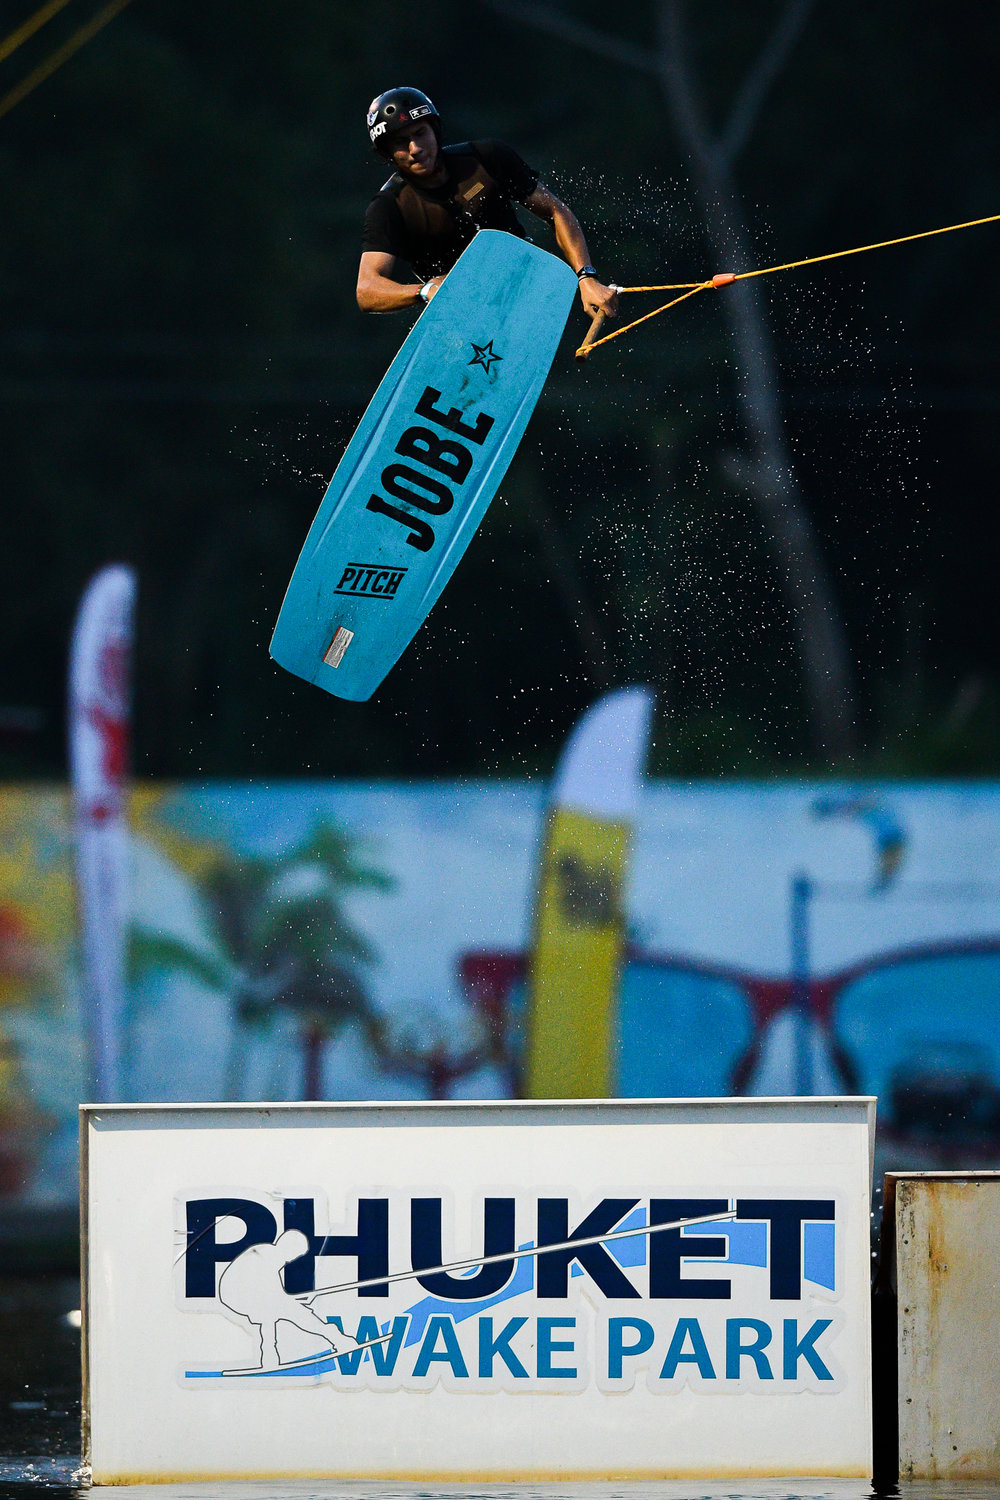 PHUKET, THAILAND - OCTOBER 01: Dewit Prasong during the Pro Feature Wakeboard Round 1 at the The Gravity Wake Open 2017, Phuket Water Park, Phuket, Thailand on October 01, 2017. (Photo by: Naratip Srisupab/SEALs Sports Images)